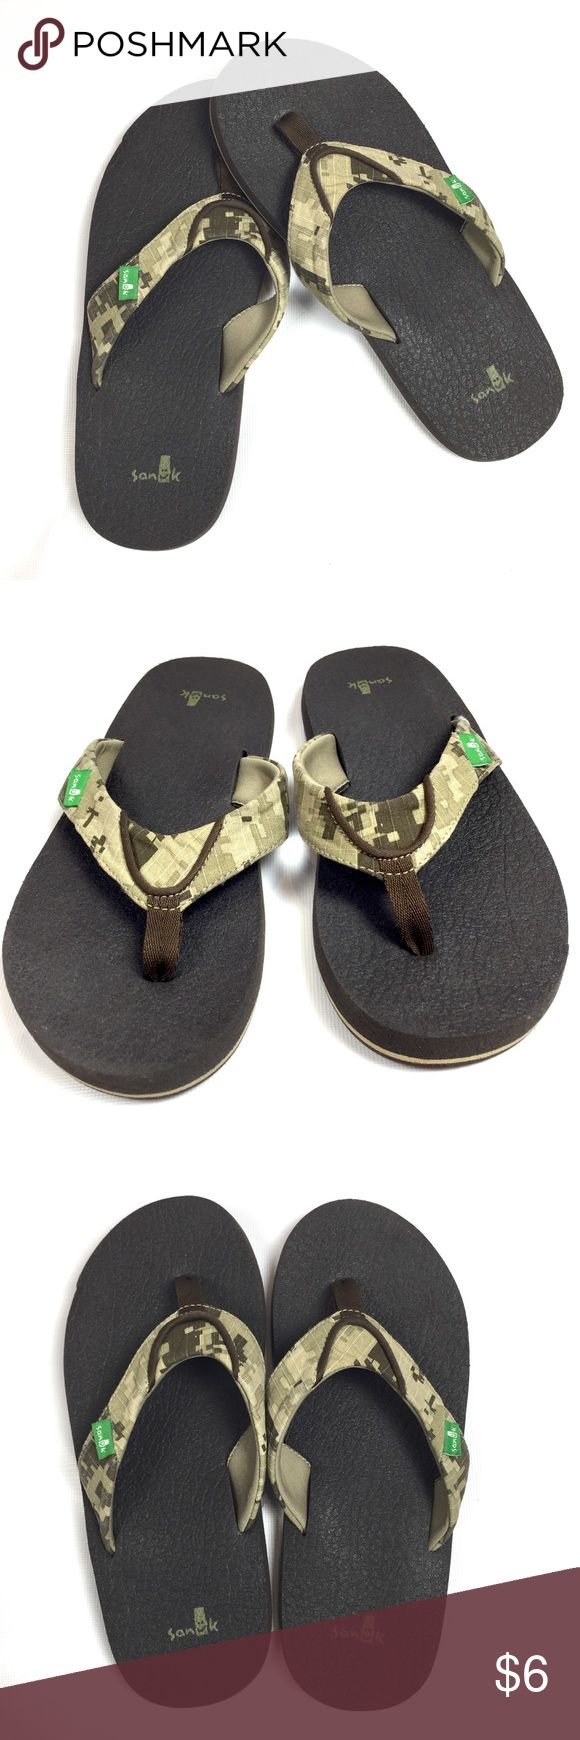 "GENTLY USED SANUK BOY'S FLIP FLOPS SIZE 5-6 USED ONCE  SANUK CAMO BROWN FLIP FLOPS IN BOY'S 5-6 USA, UK 4-5  LENGTH: 10"", 4"" WIDTH TOP OF FLIP FLOP, NEAR HEEL 3""  CLEAN, NO STAINS, TINY WEAR AT TOP OF SANDAL ON BOTTOM  SMOKE-FREE-HOME Sanuk Shoes Sandals & Flip Flops"